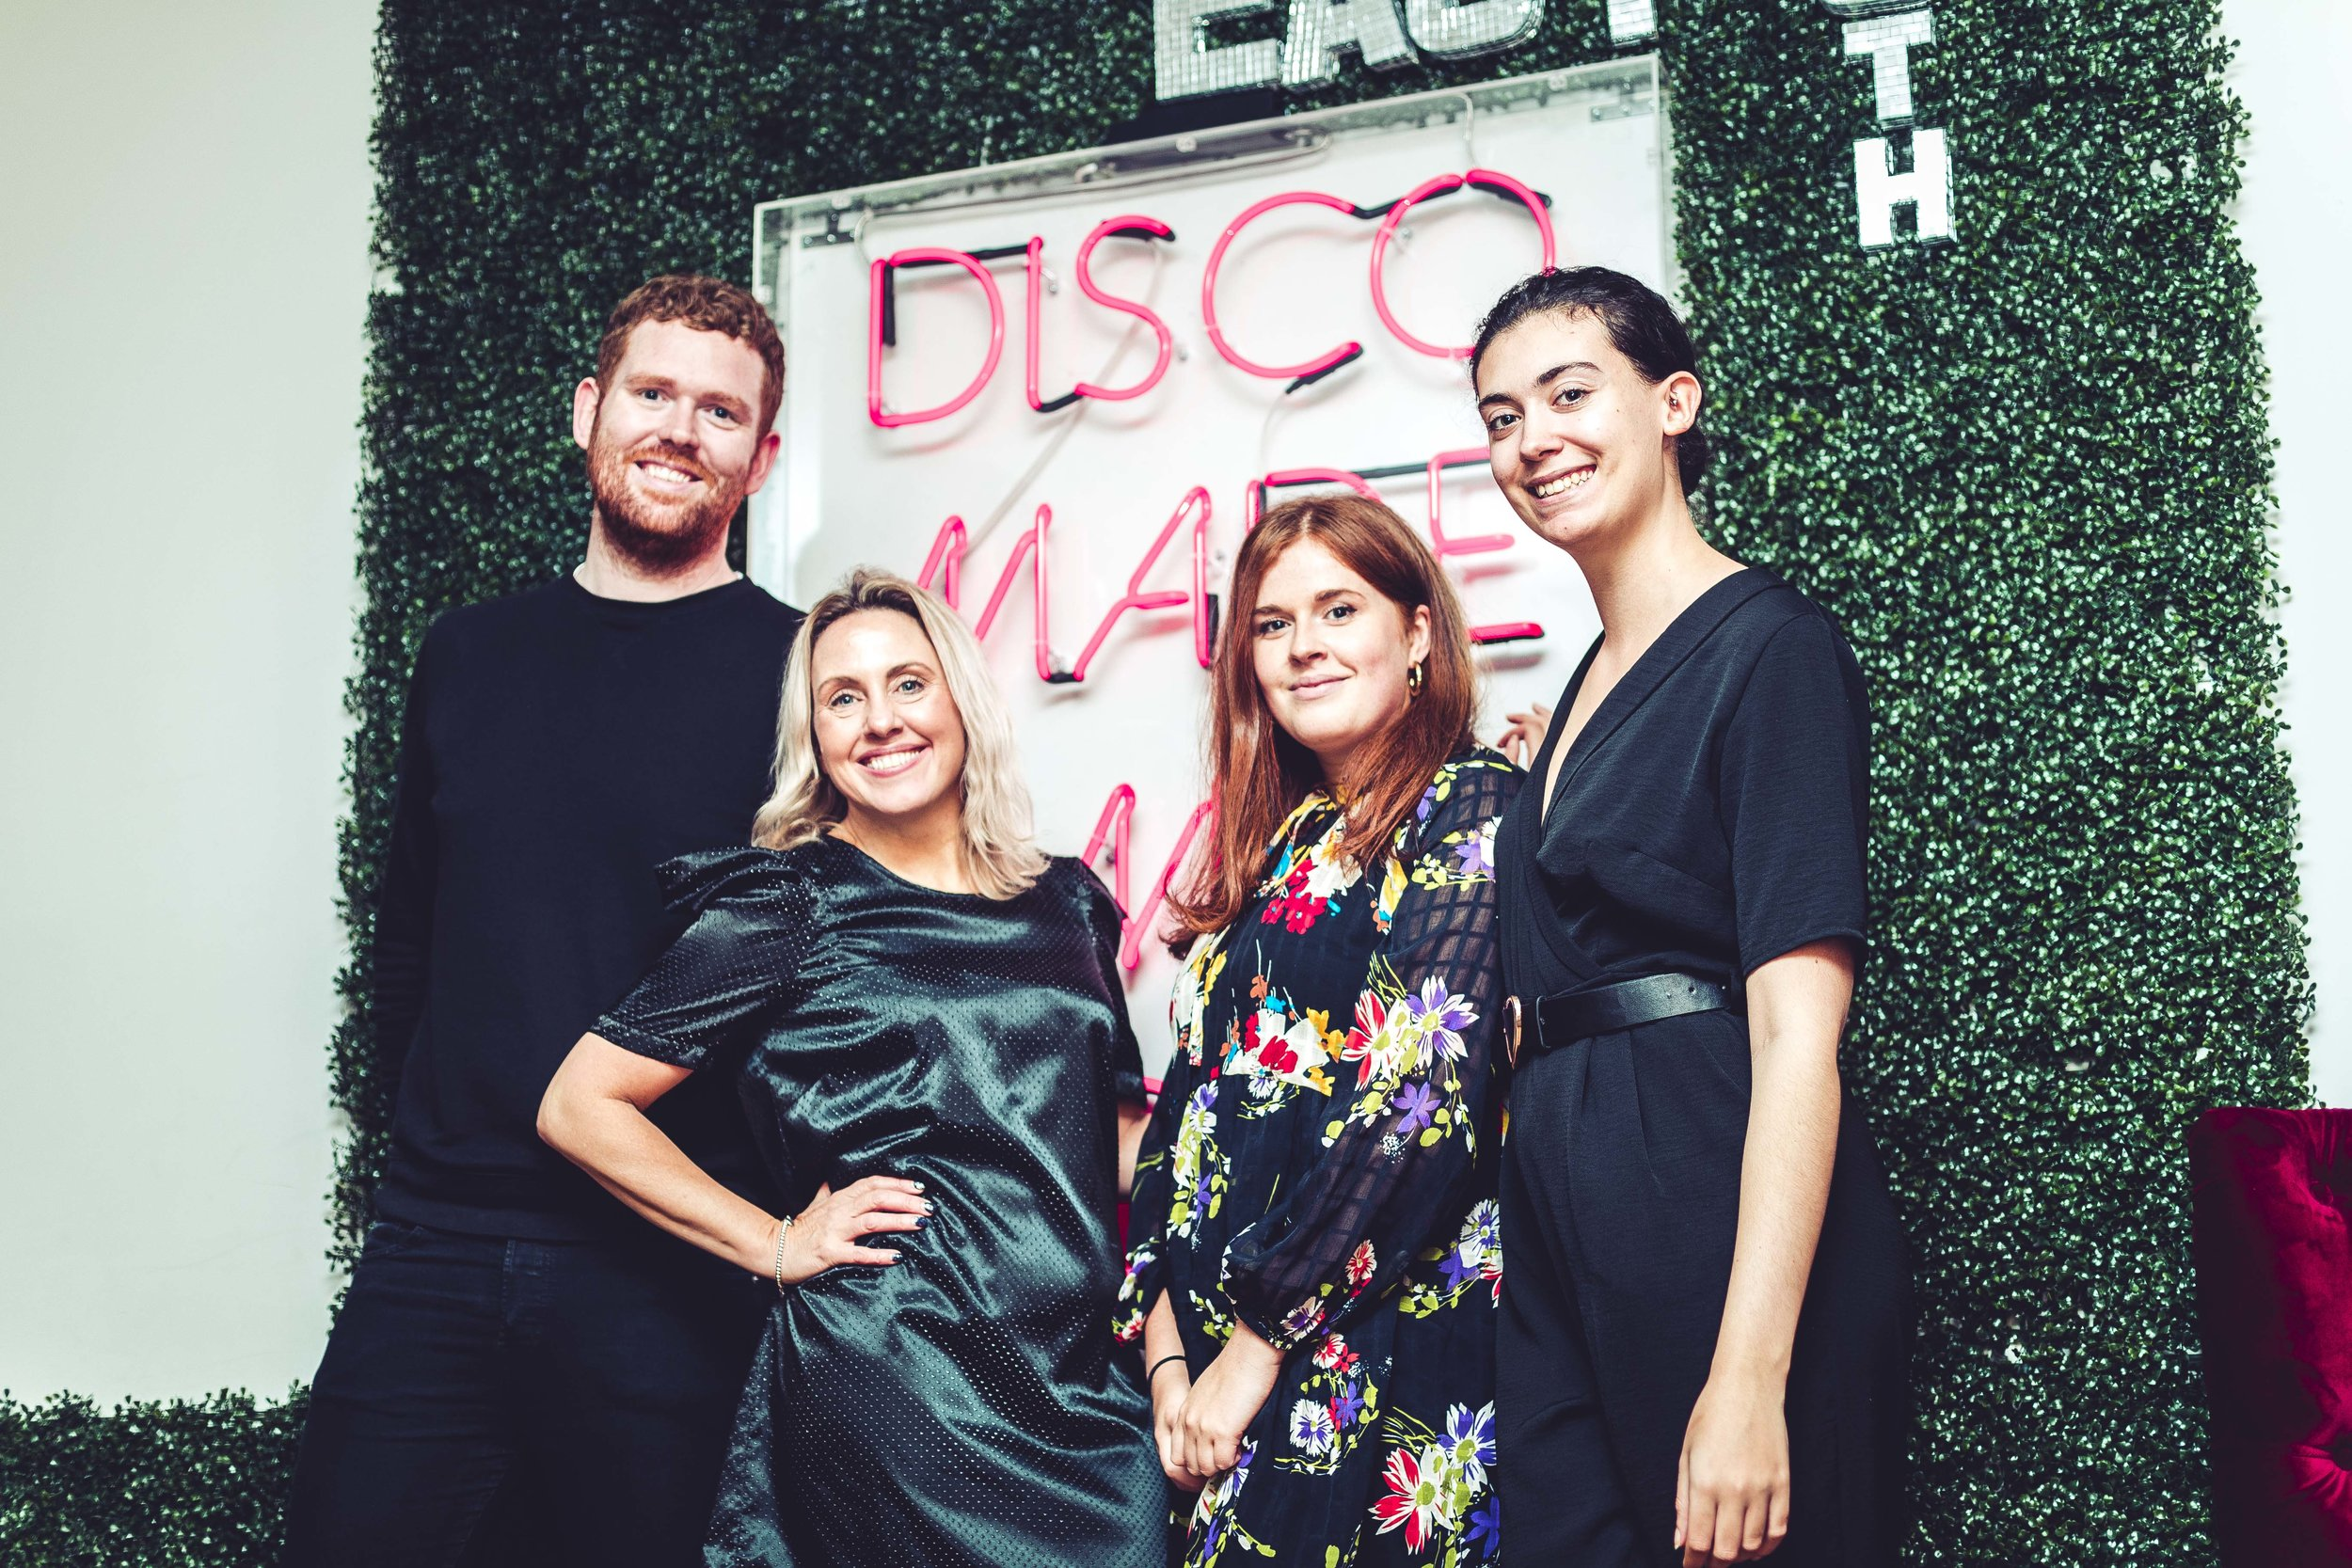 Team SLBPR at the launch of  Disco Made Me Do It  at Studio 59